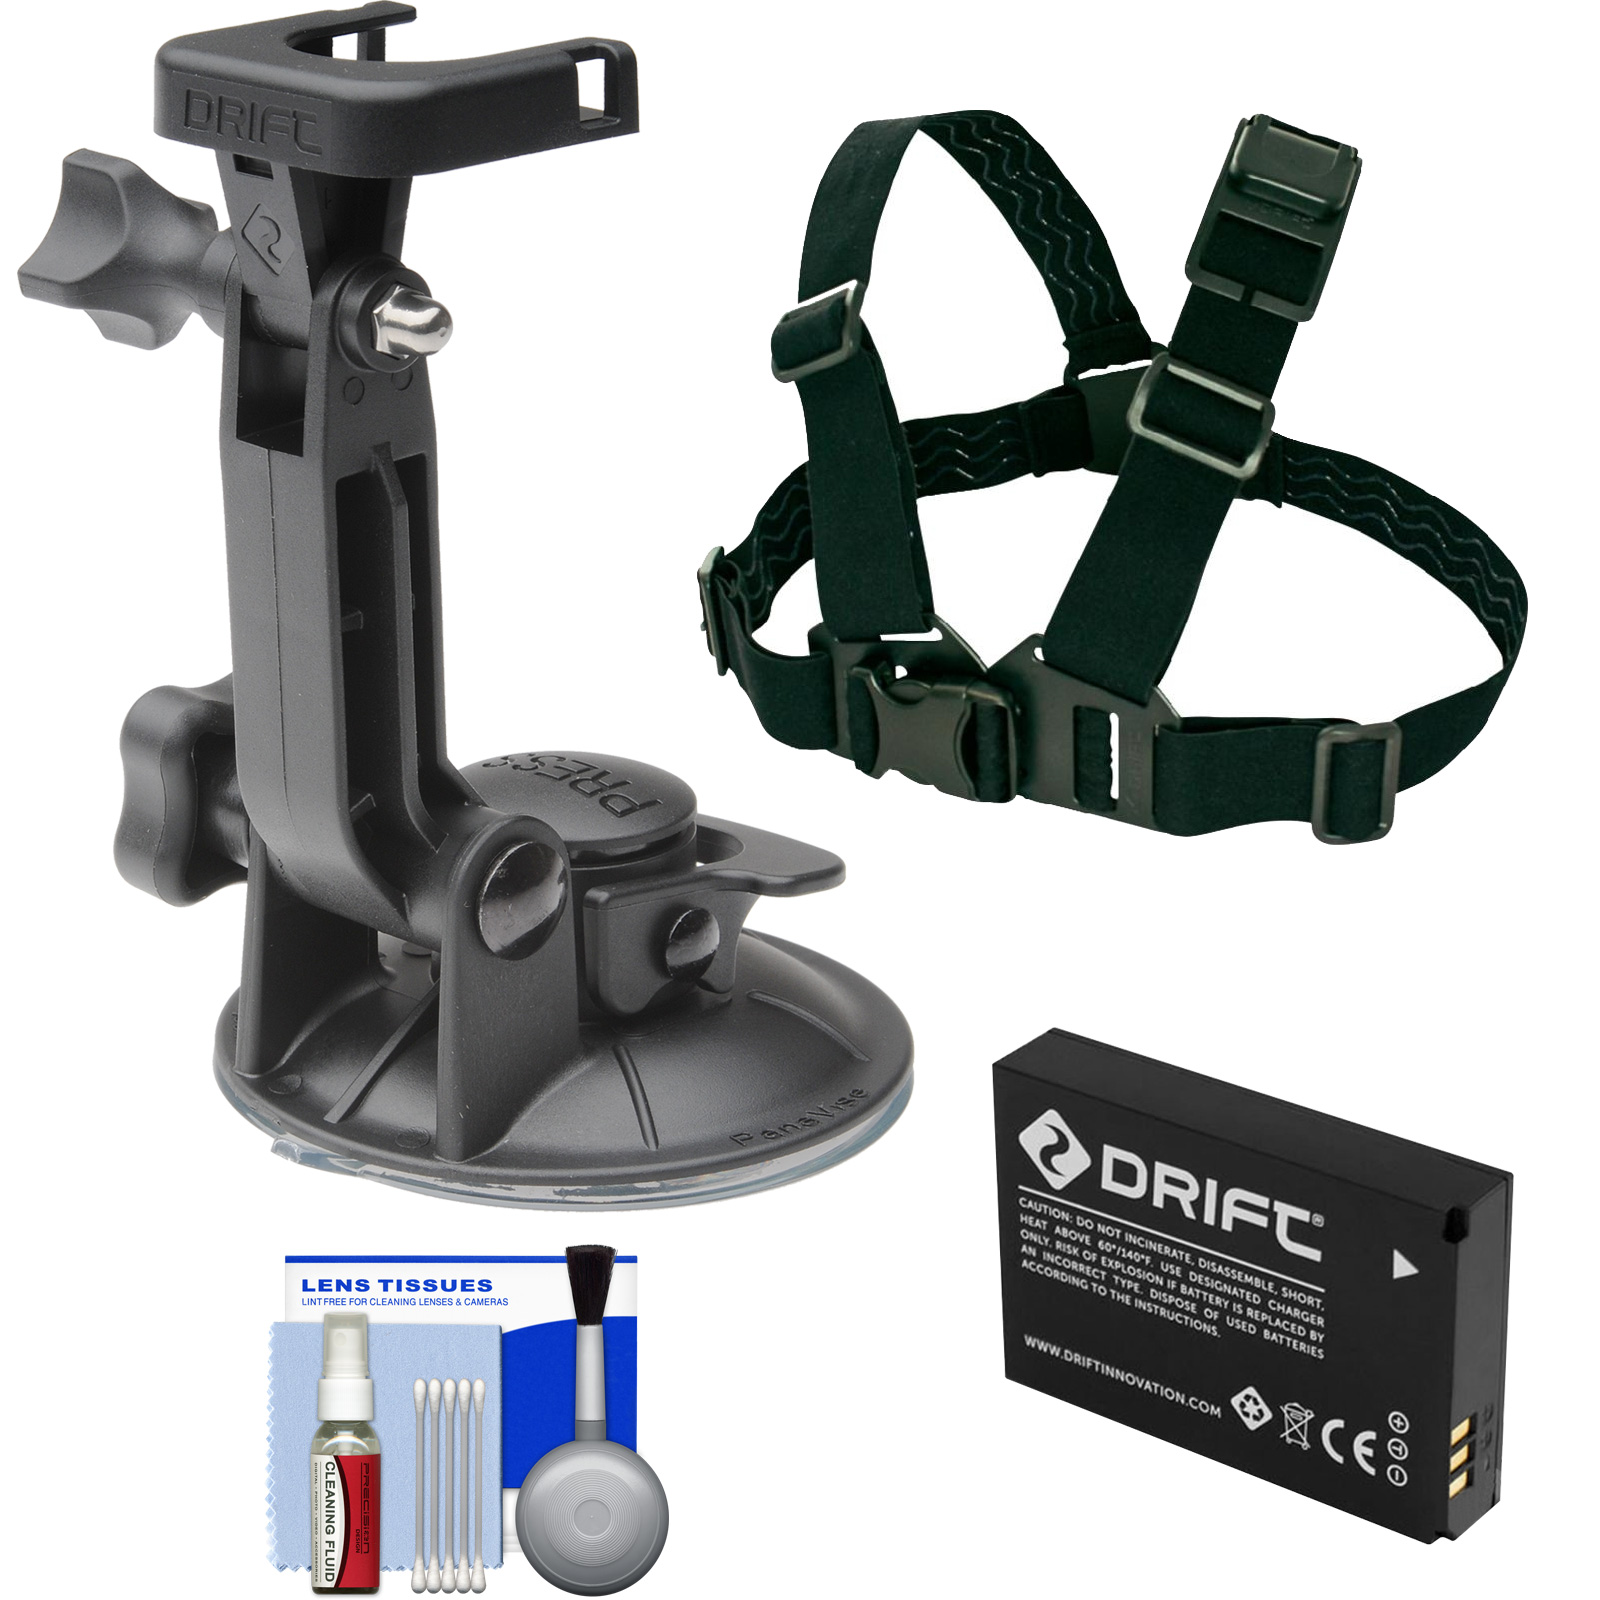 Drift Innovation Suction Cup Mount with Shoulder Mount + Battery + Accessory Kit HD Ghost & Ghost-S Action Camcorders